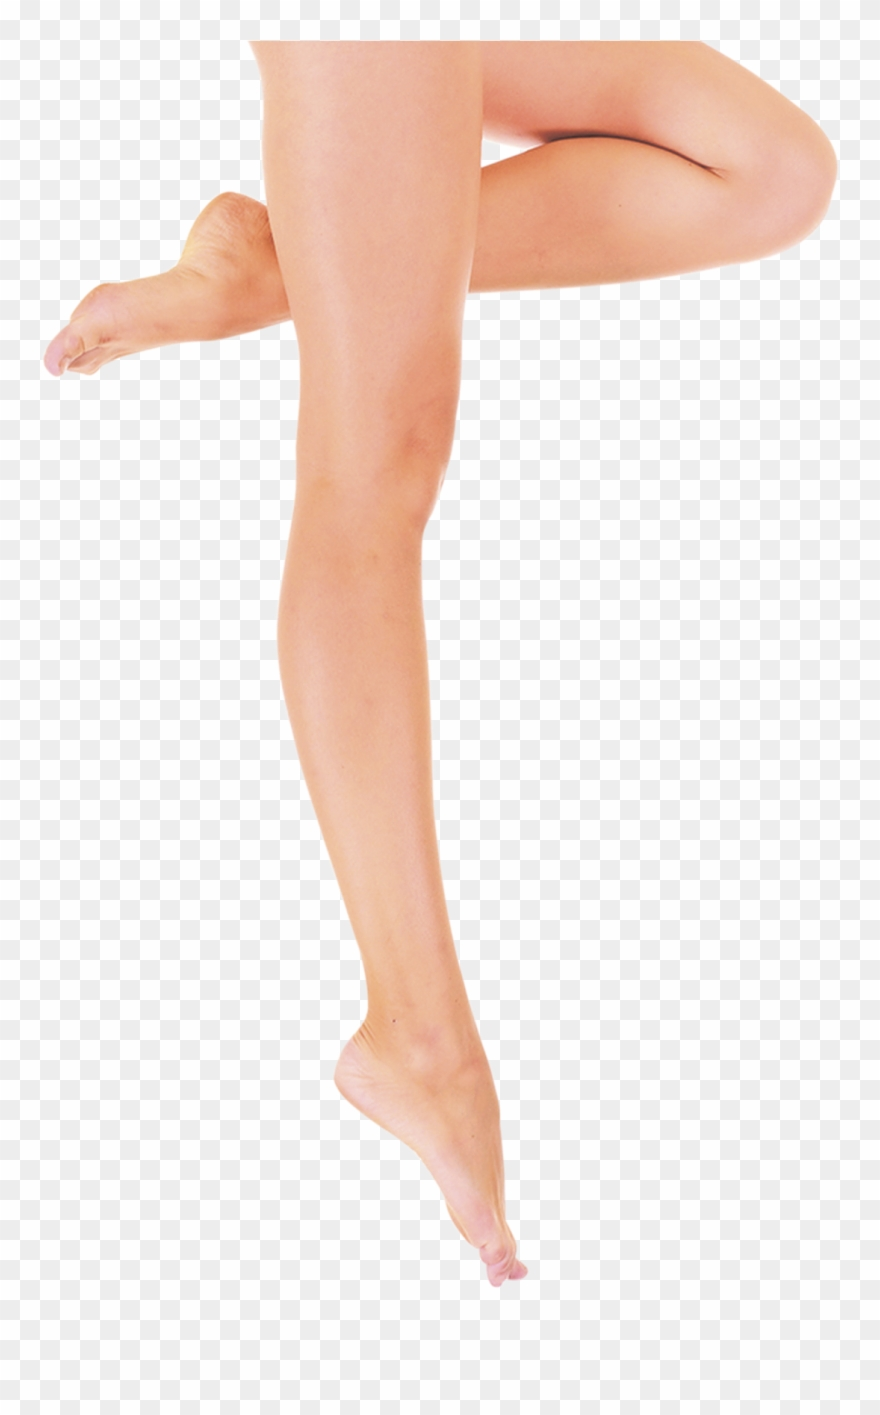 Ankles crossed clipart picture free download Female Leg Clipart Png - Legs Png Transparent Png (#910987) - PinClipart picture free download